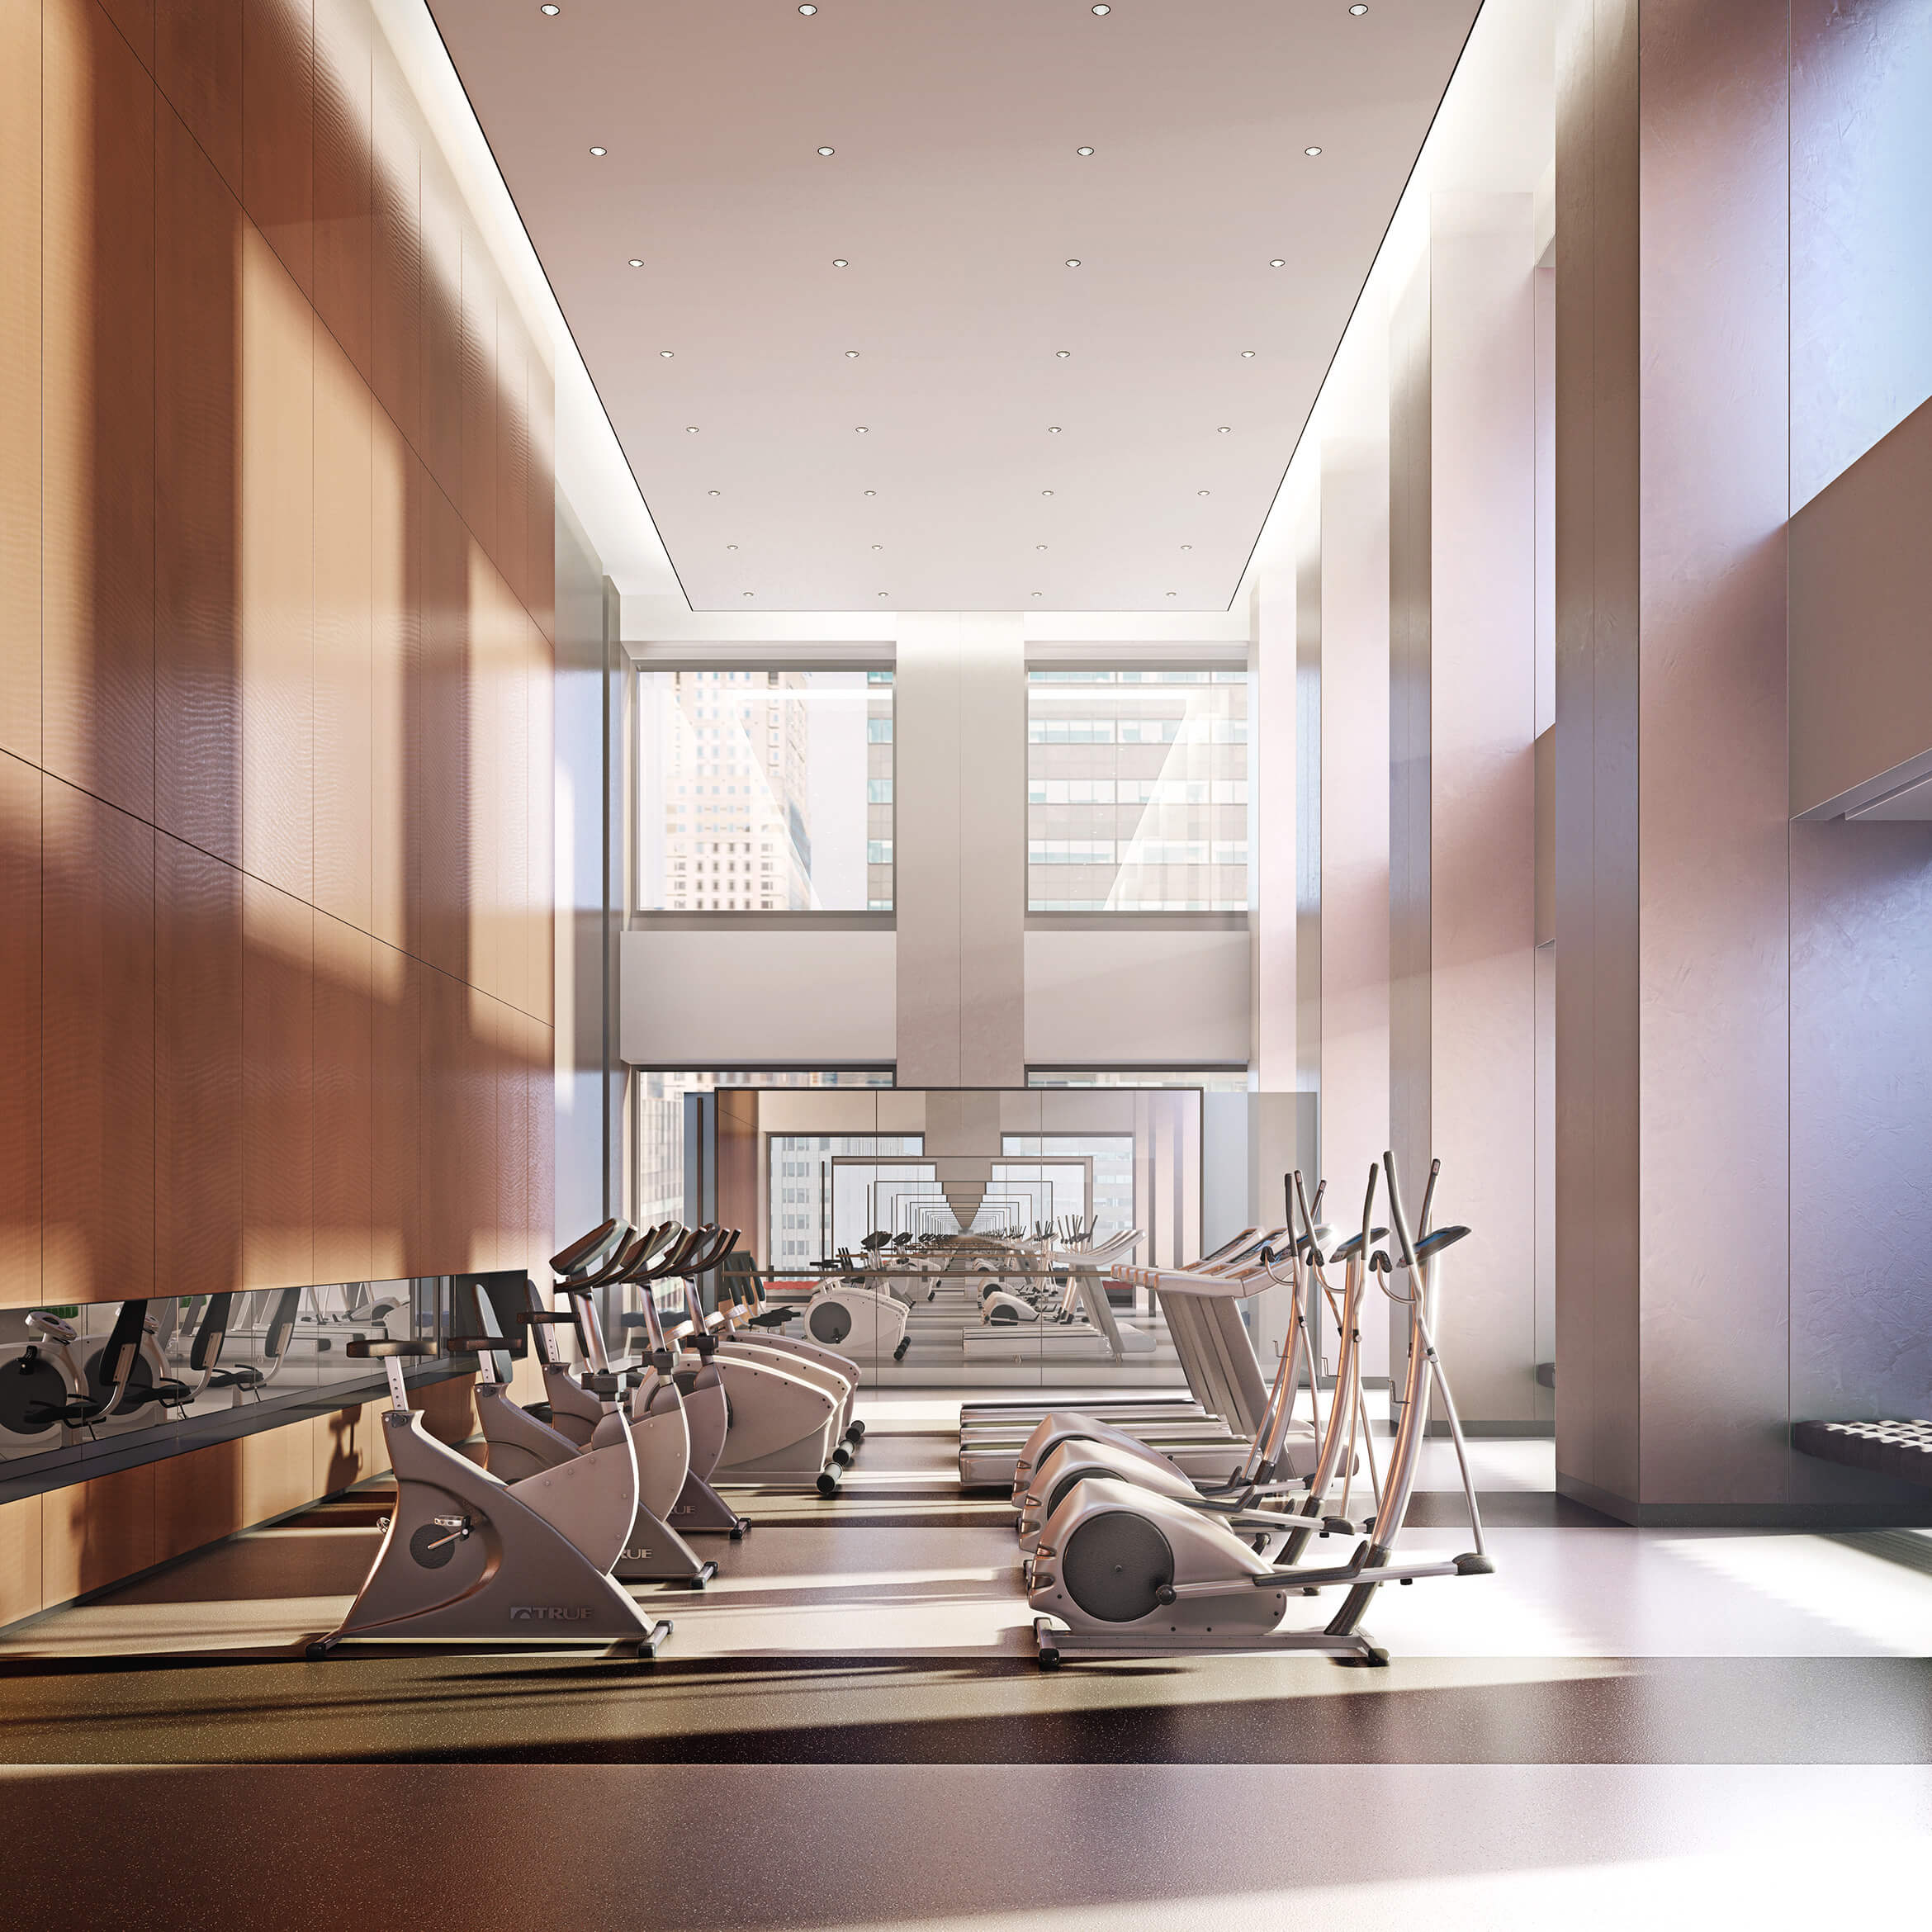 DBOX_website_432casestudy_CGI_amenities_gym